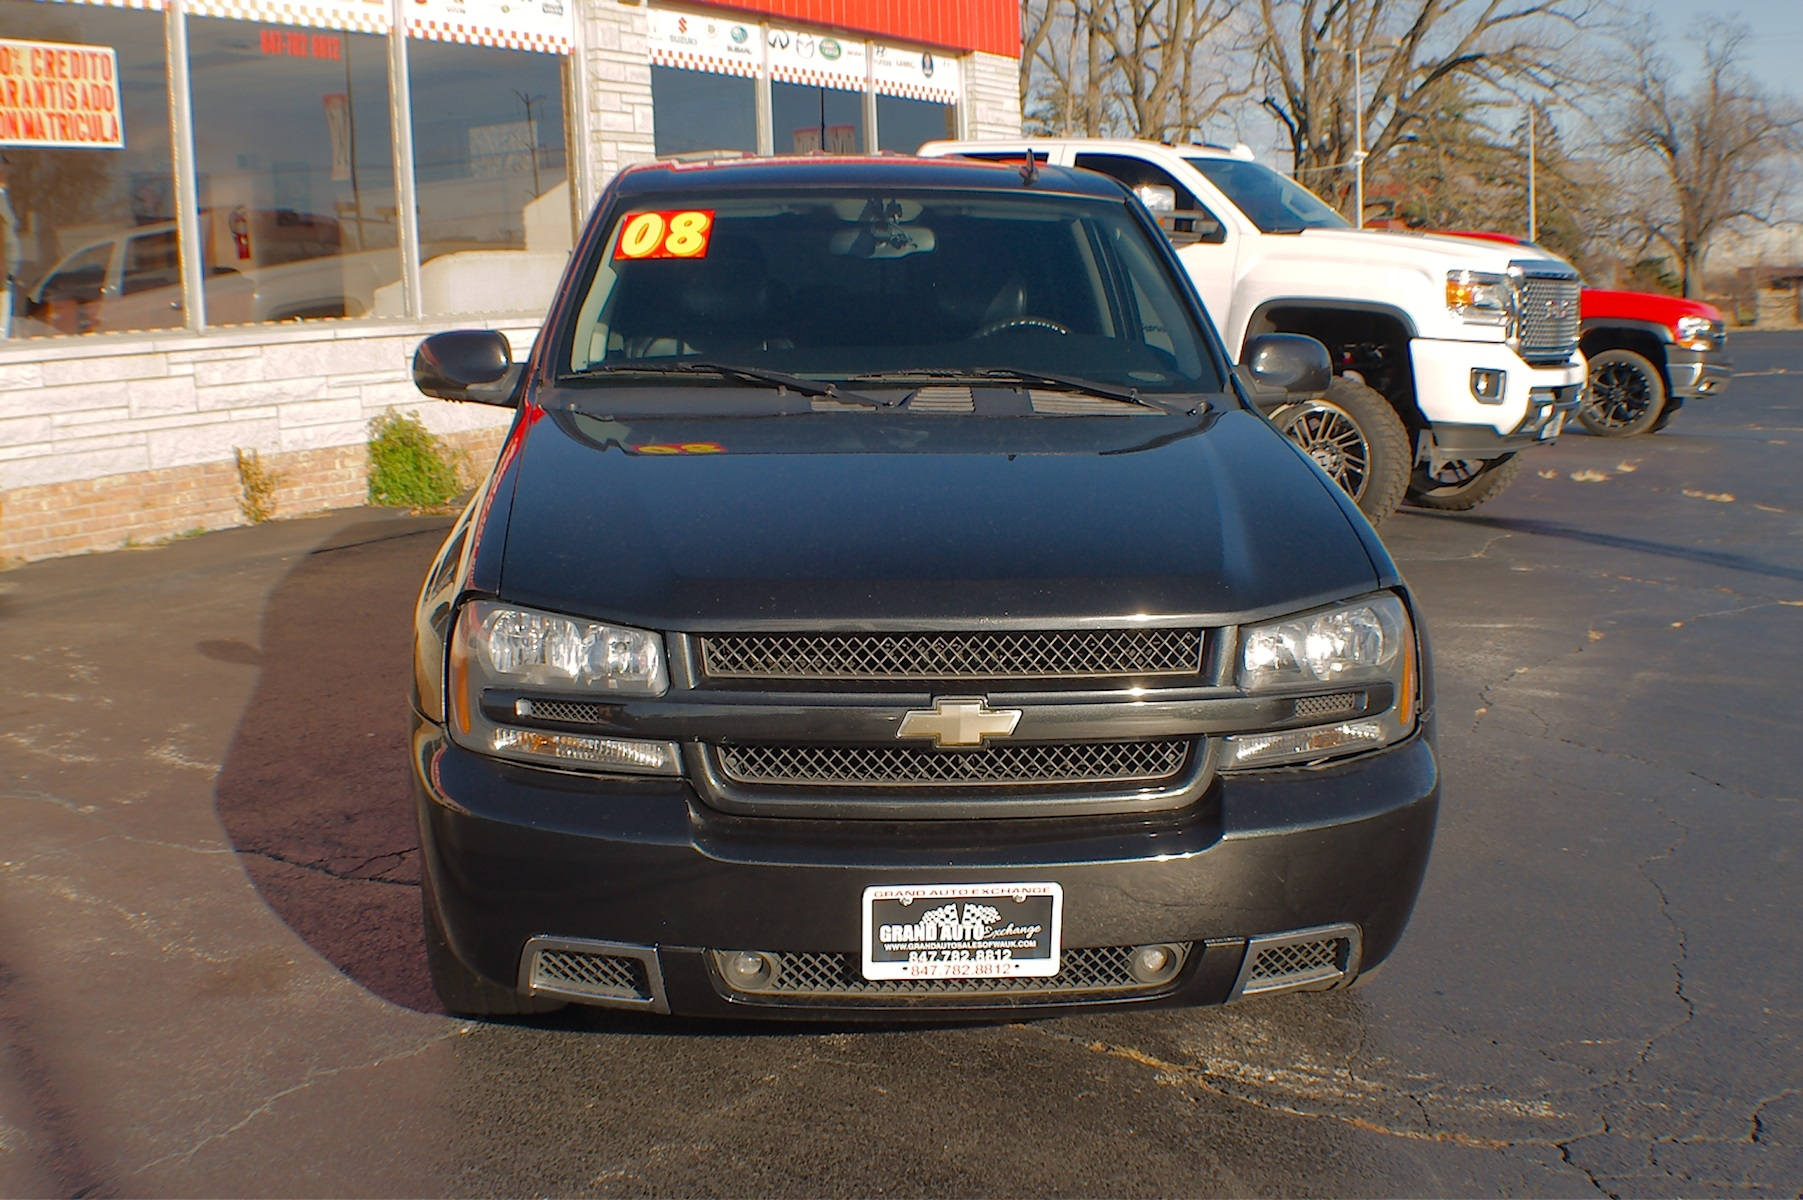 2008 Chevrolet Trailblazer SS Black Used SUV Sale Gurnee Kenosha Mchenry Chicago Illinois